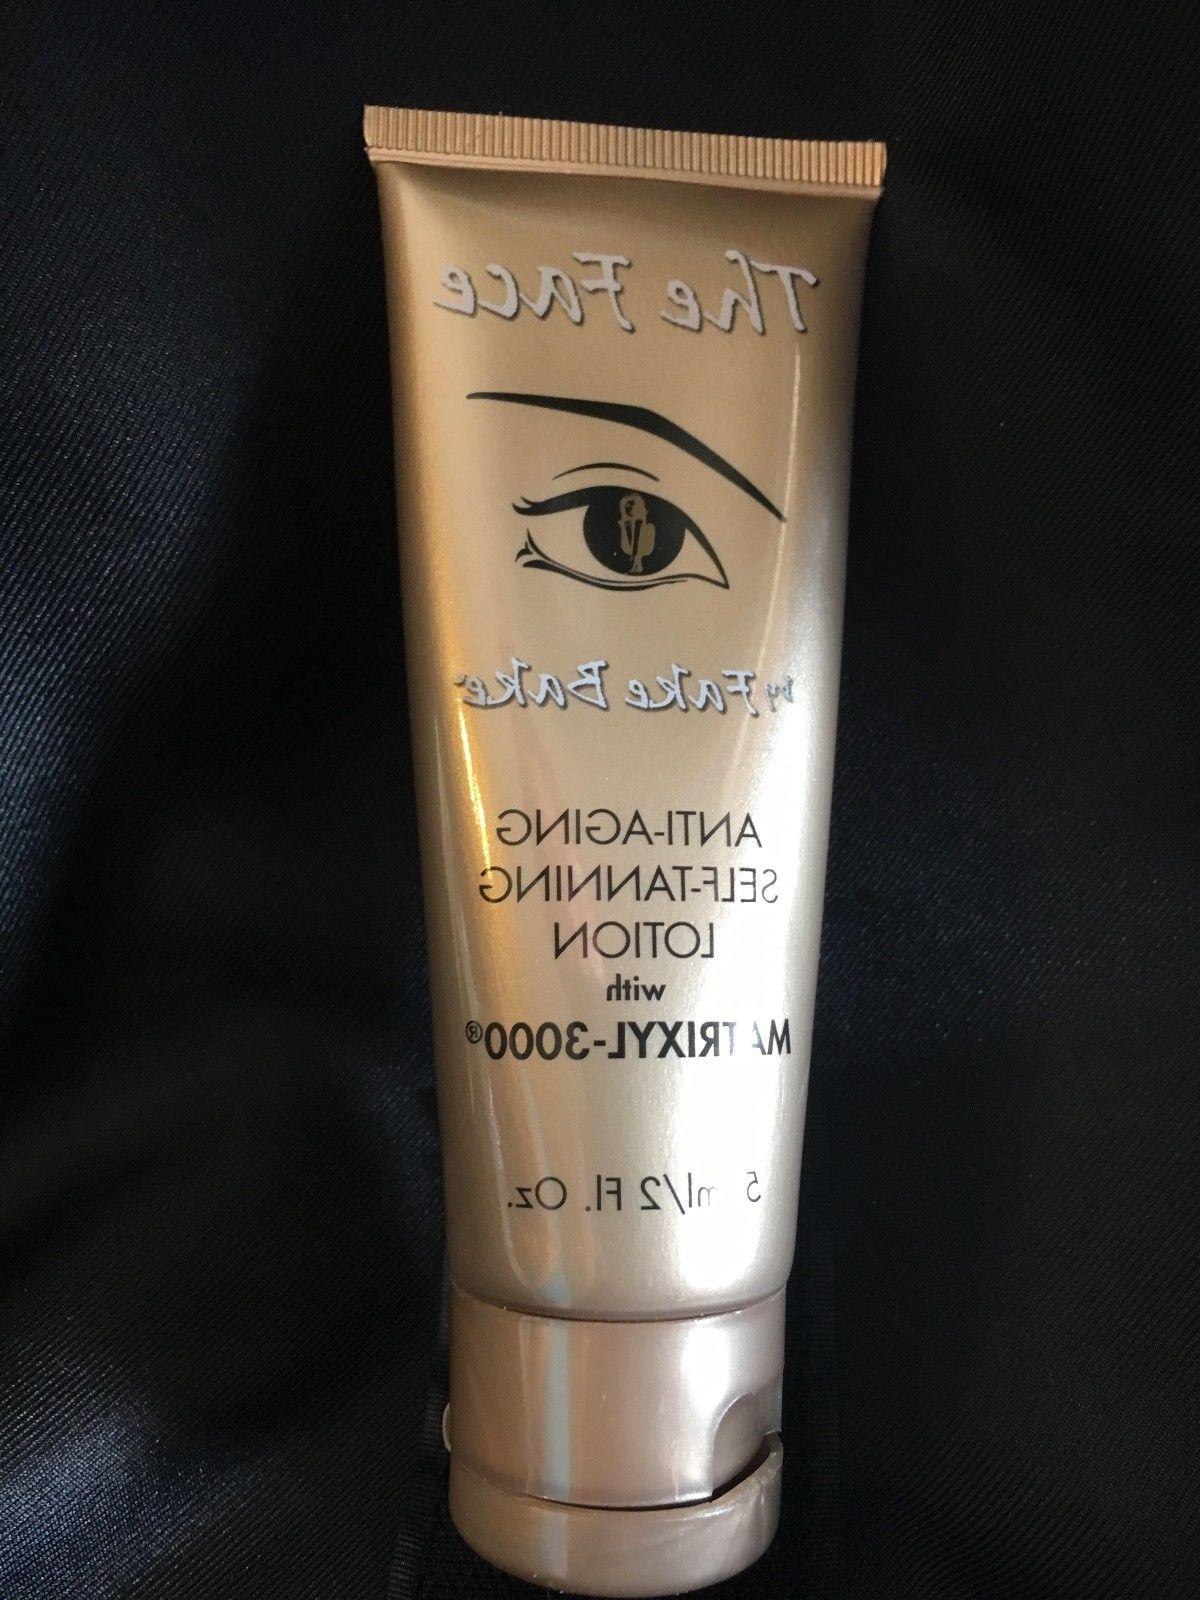 the face anti aging self tanning lotion